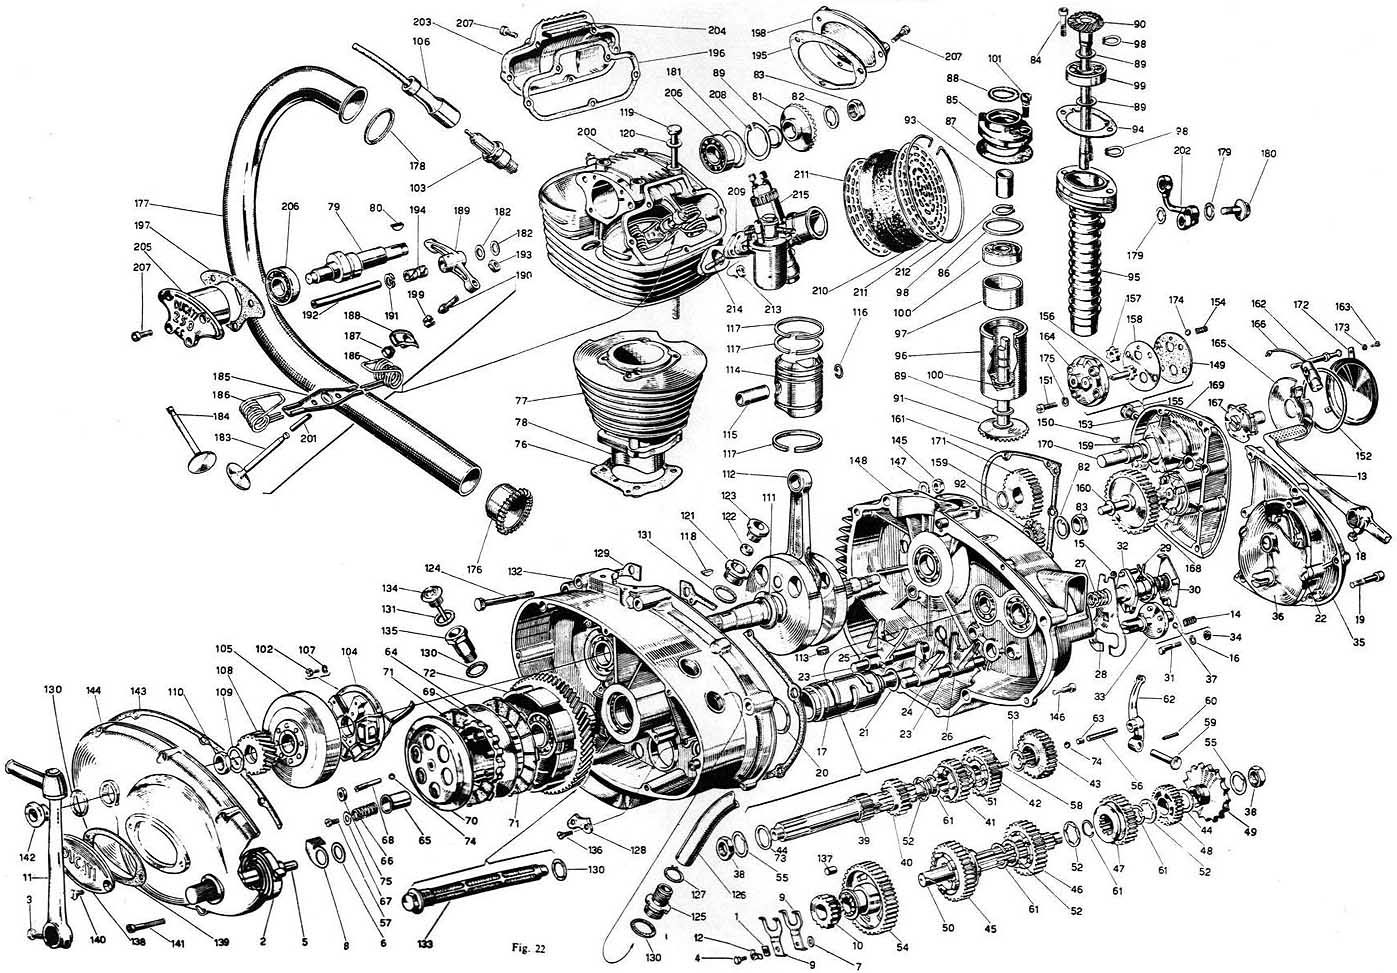 Vintage car motor schematic schematic pinterest cars and engine vintage car motor schematic malvernweather Choice Image